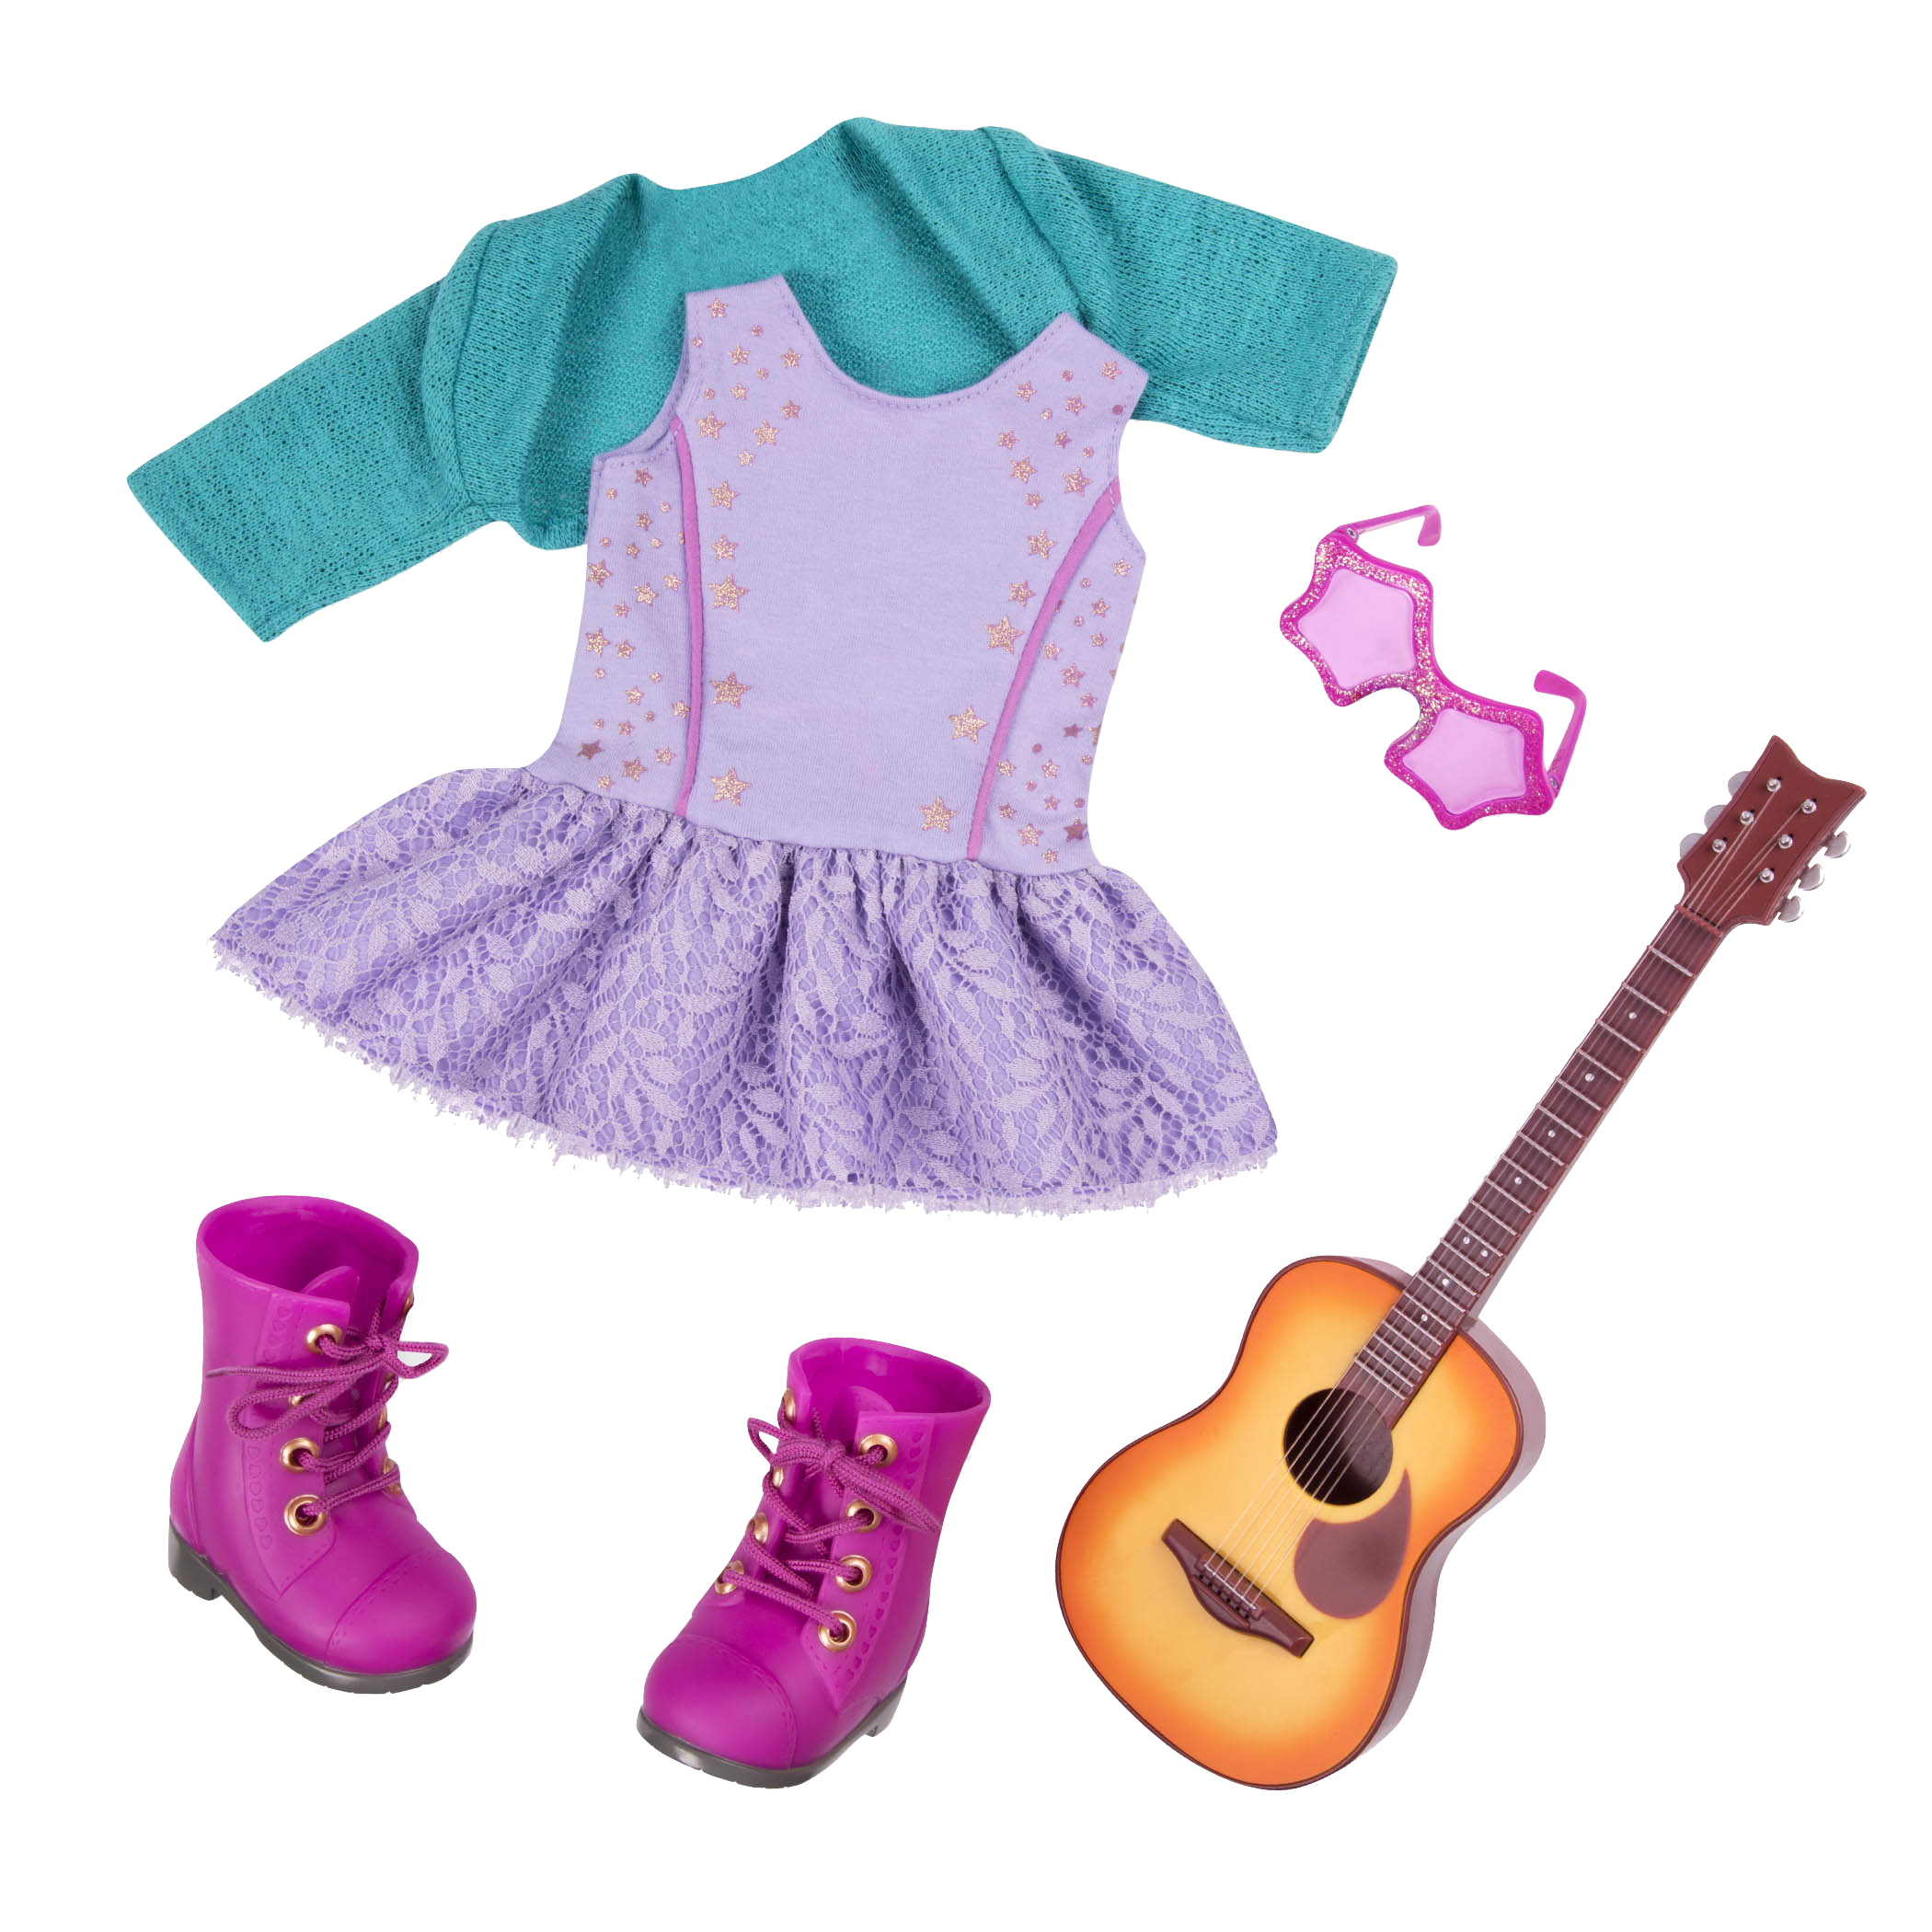 Melodies and Memories guitar Outfit for 18-inch Dolls